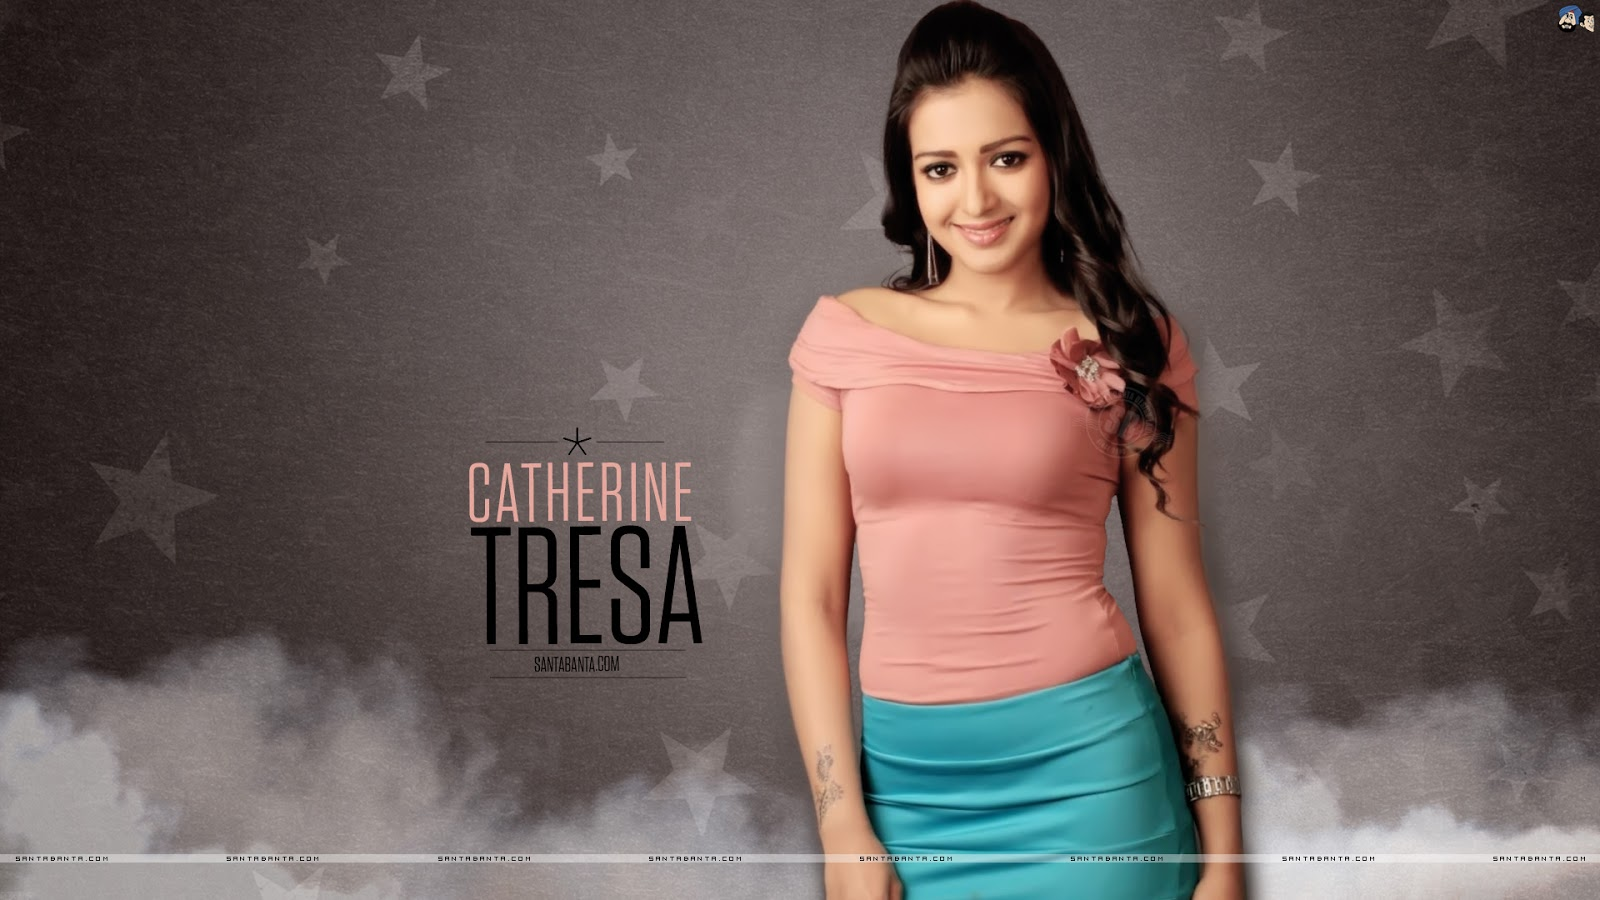 Catherine Tresa Girls Hidia Wallpaper HD